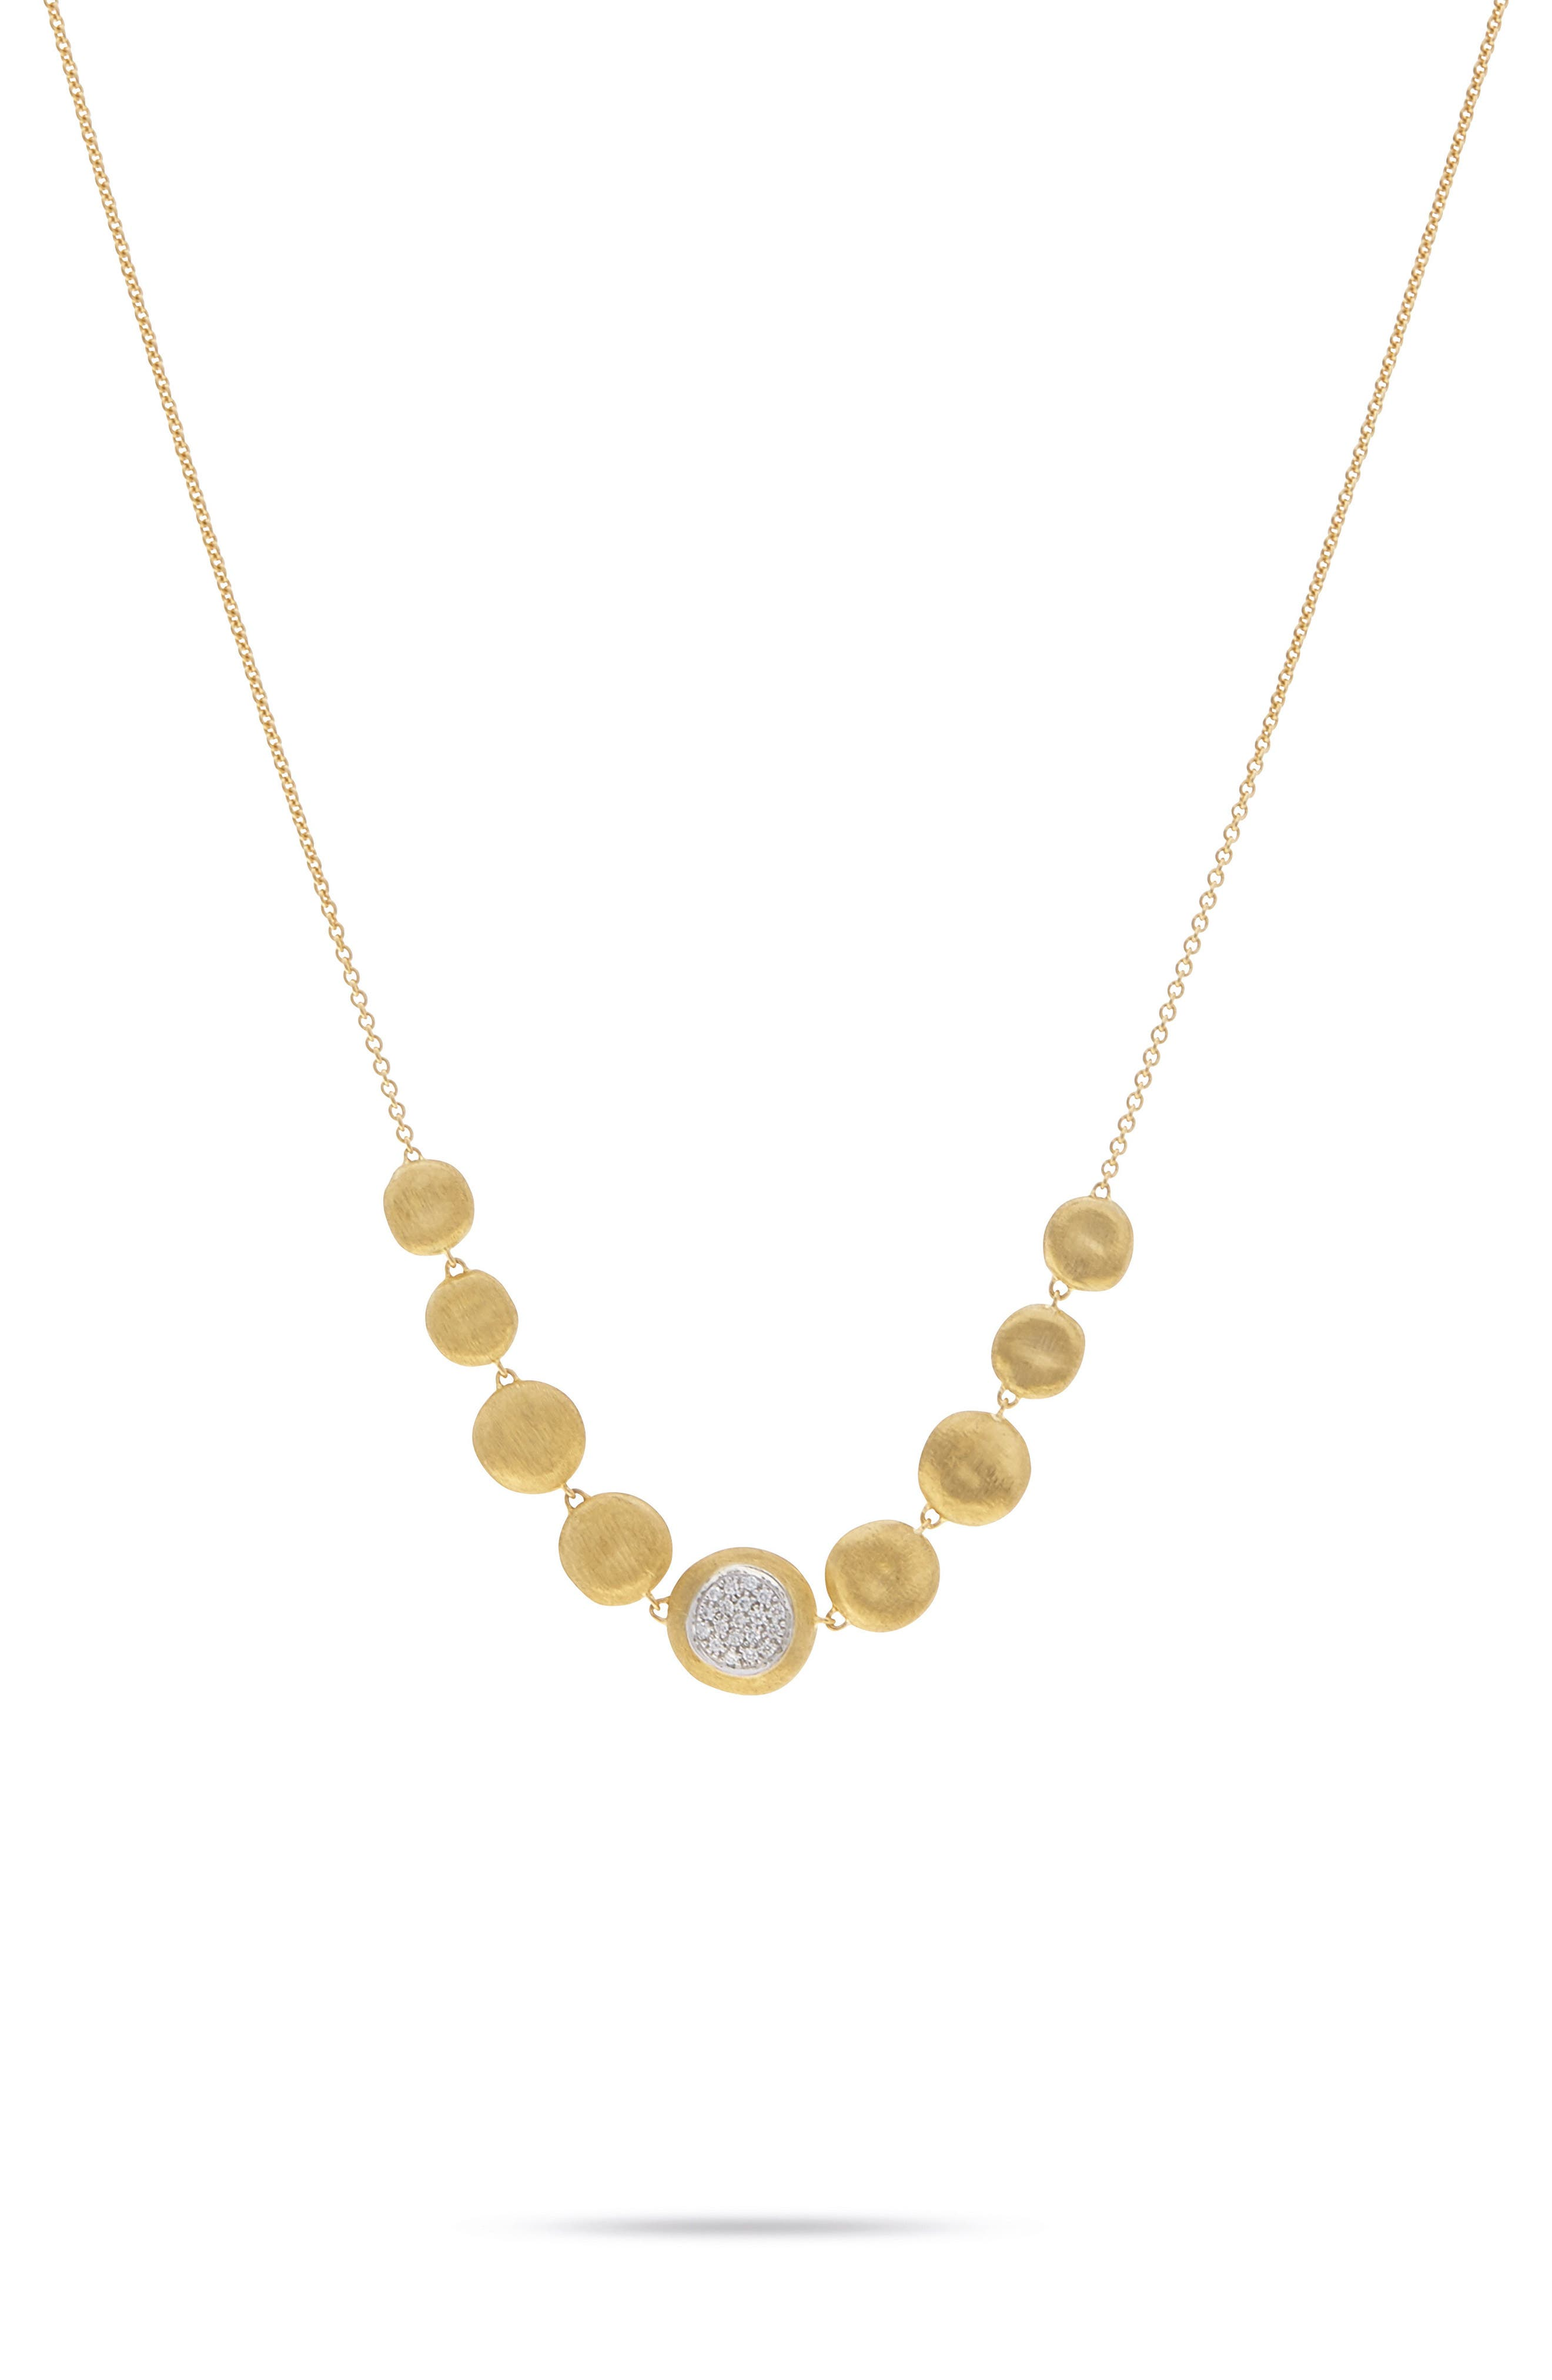 Jaipur 18K Gold & Diamond Necklace,                         Main,                         color, YELLOW GOLD